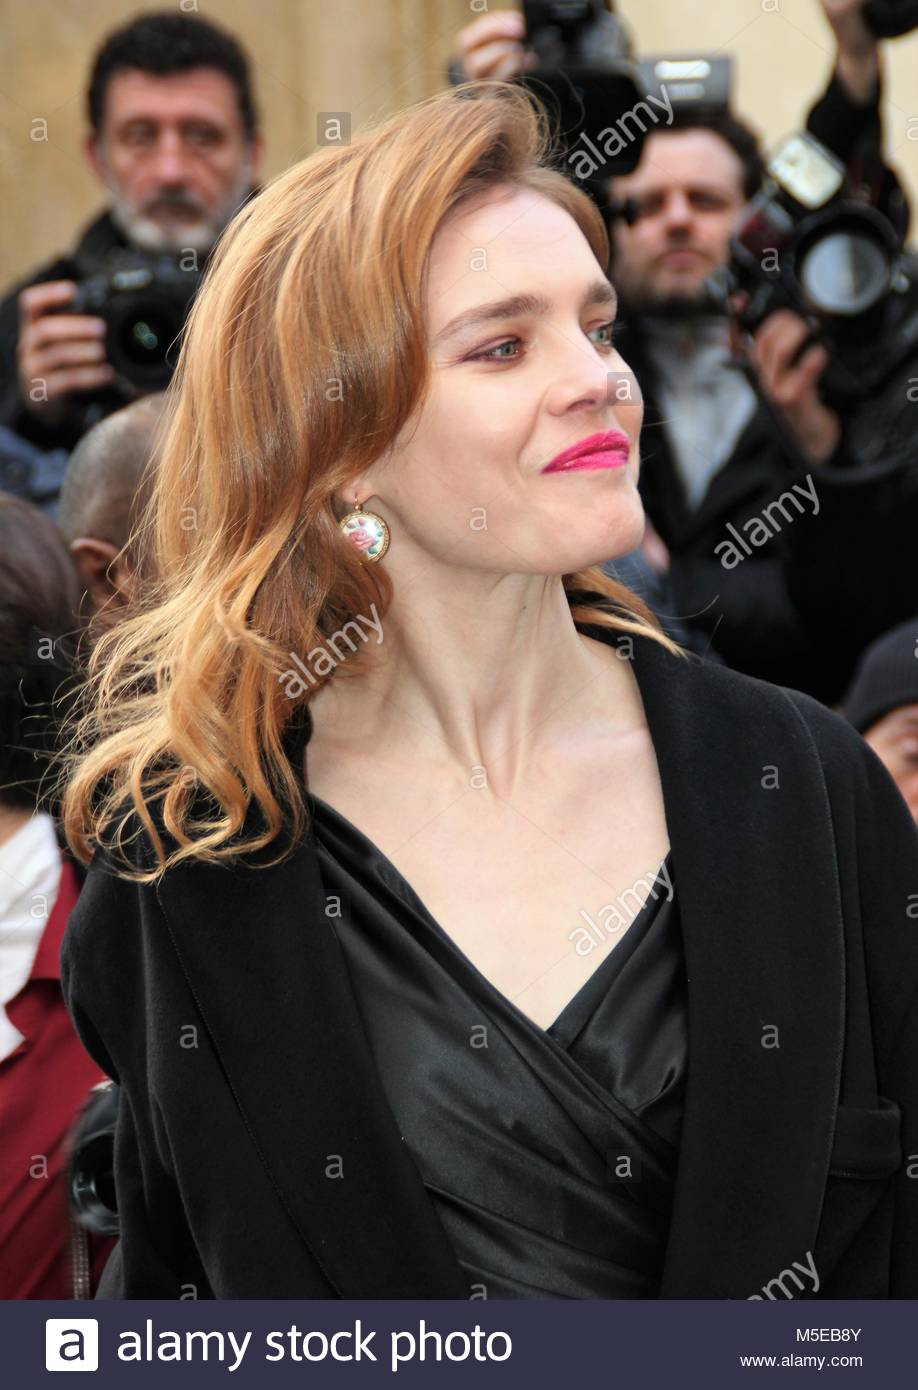 Paris Fashion Week - Christian Dior Haute Couture Spring Summer 2018 show - Arrivals  Featuring: Atmosphere, Natalia - Stock Image